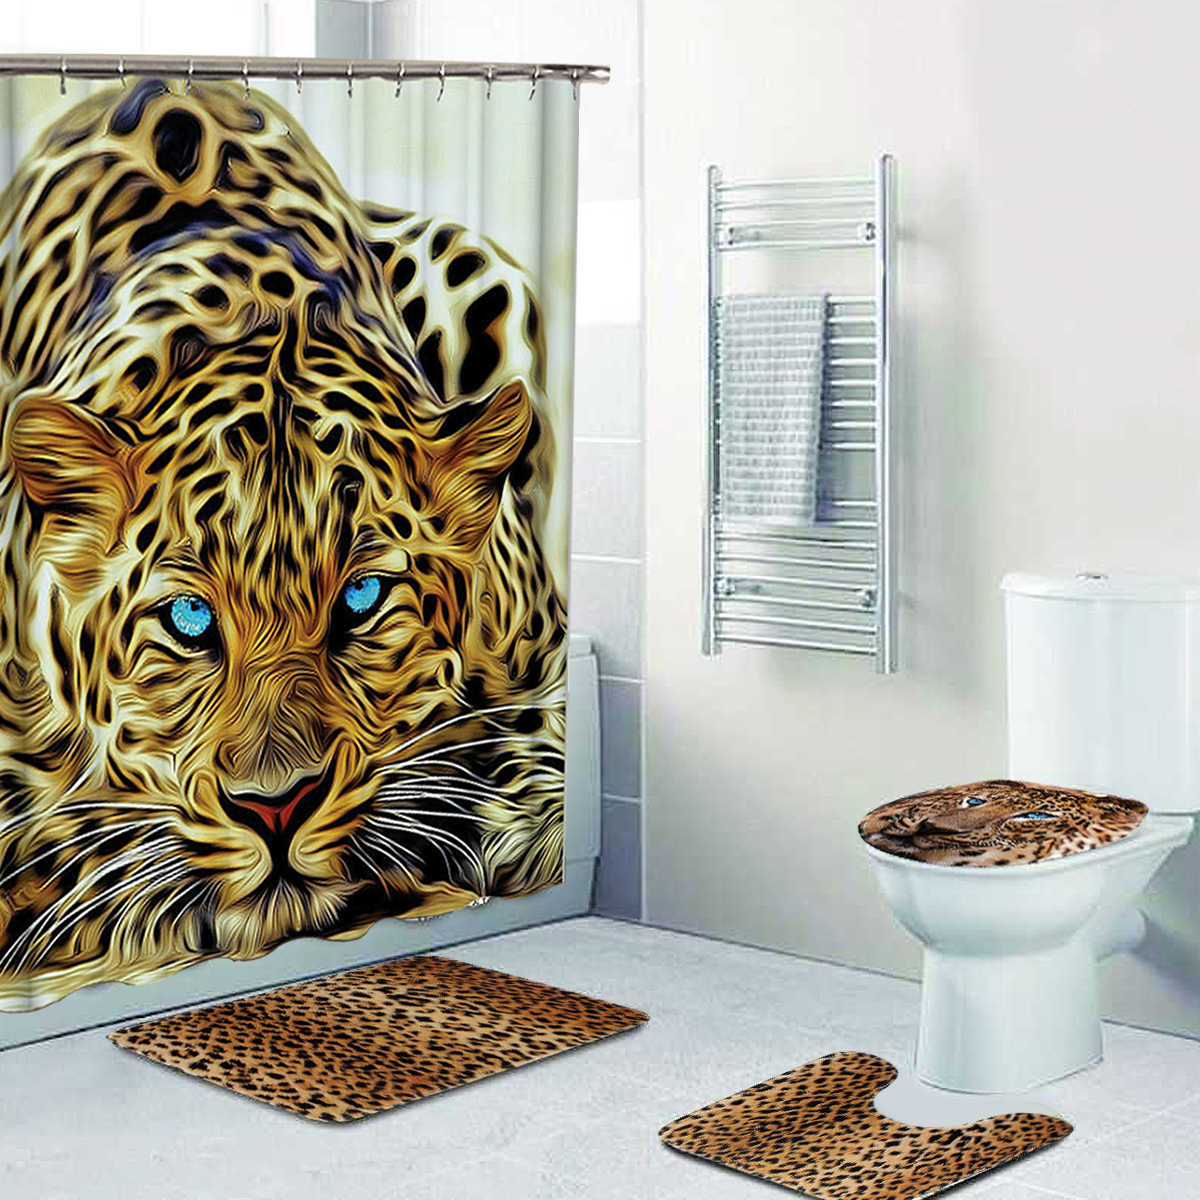 4Pcs Pattern Leopard Bathroom Mat + Shower Curtain w/12xHooks Pedestal Toilet Seat Mat+Lid+Bath Mat Non Slip Floor Decor Carpet